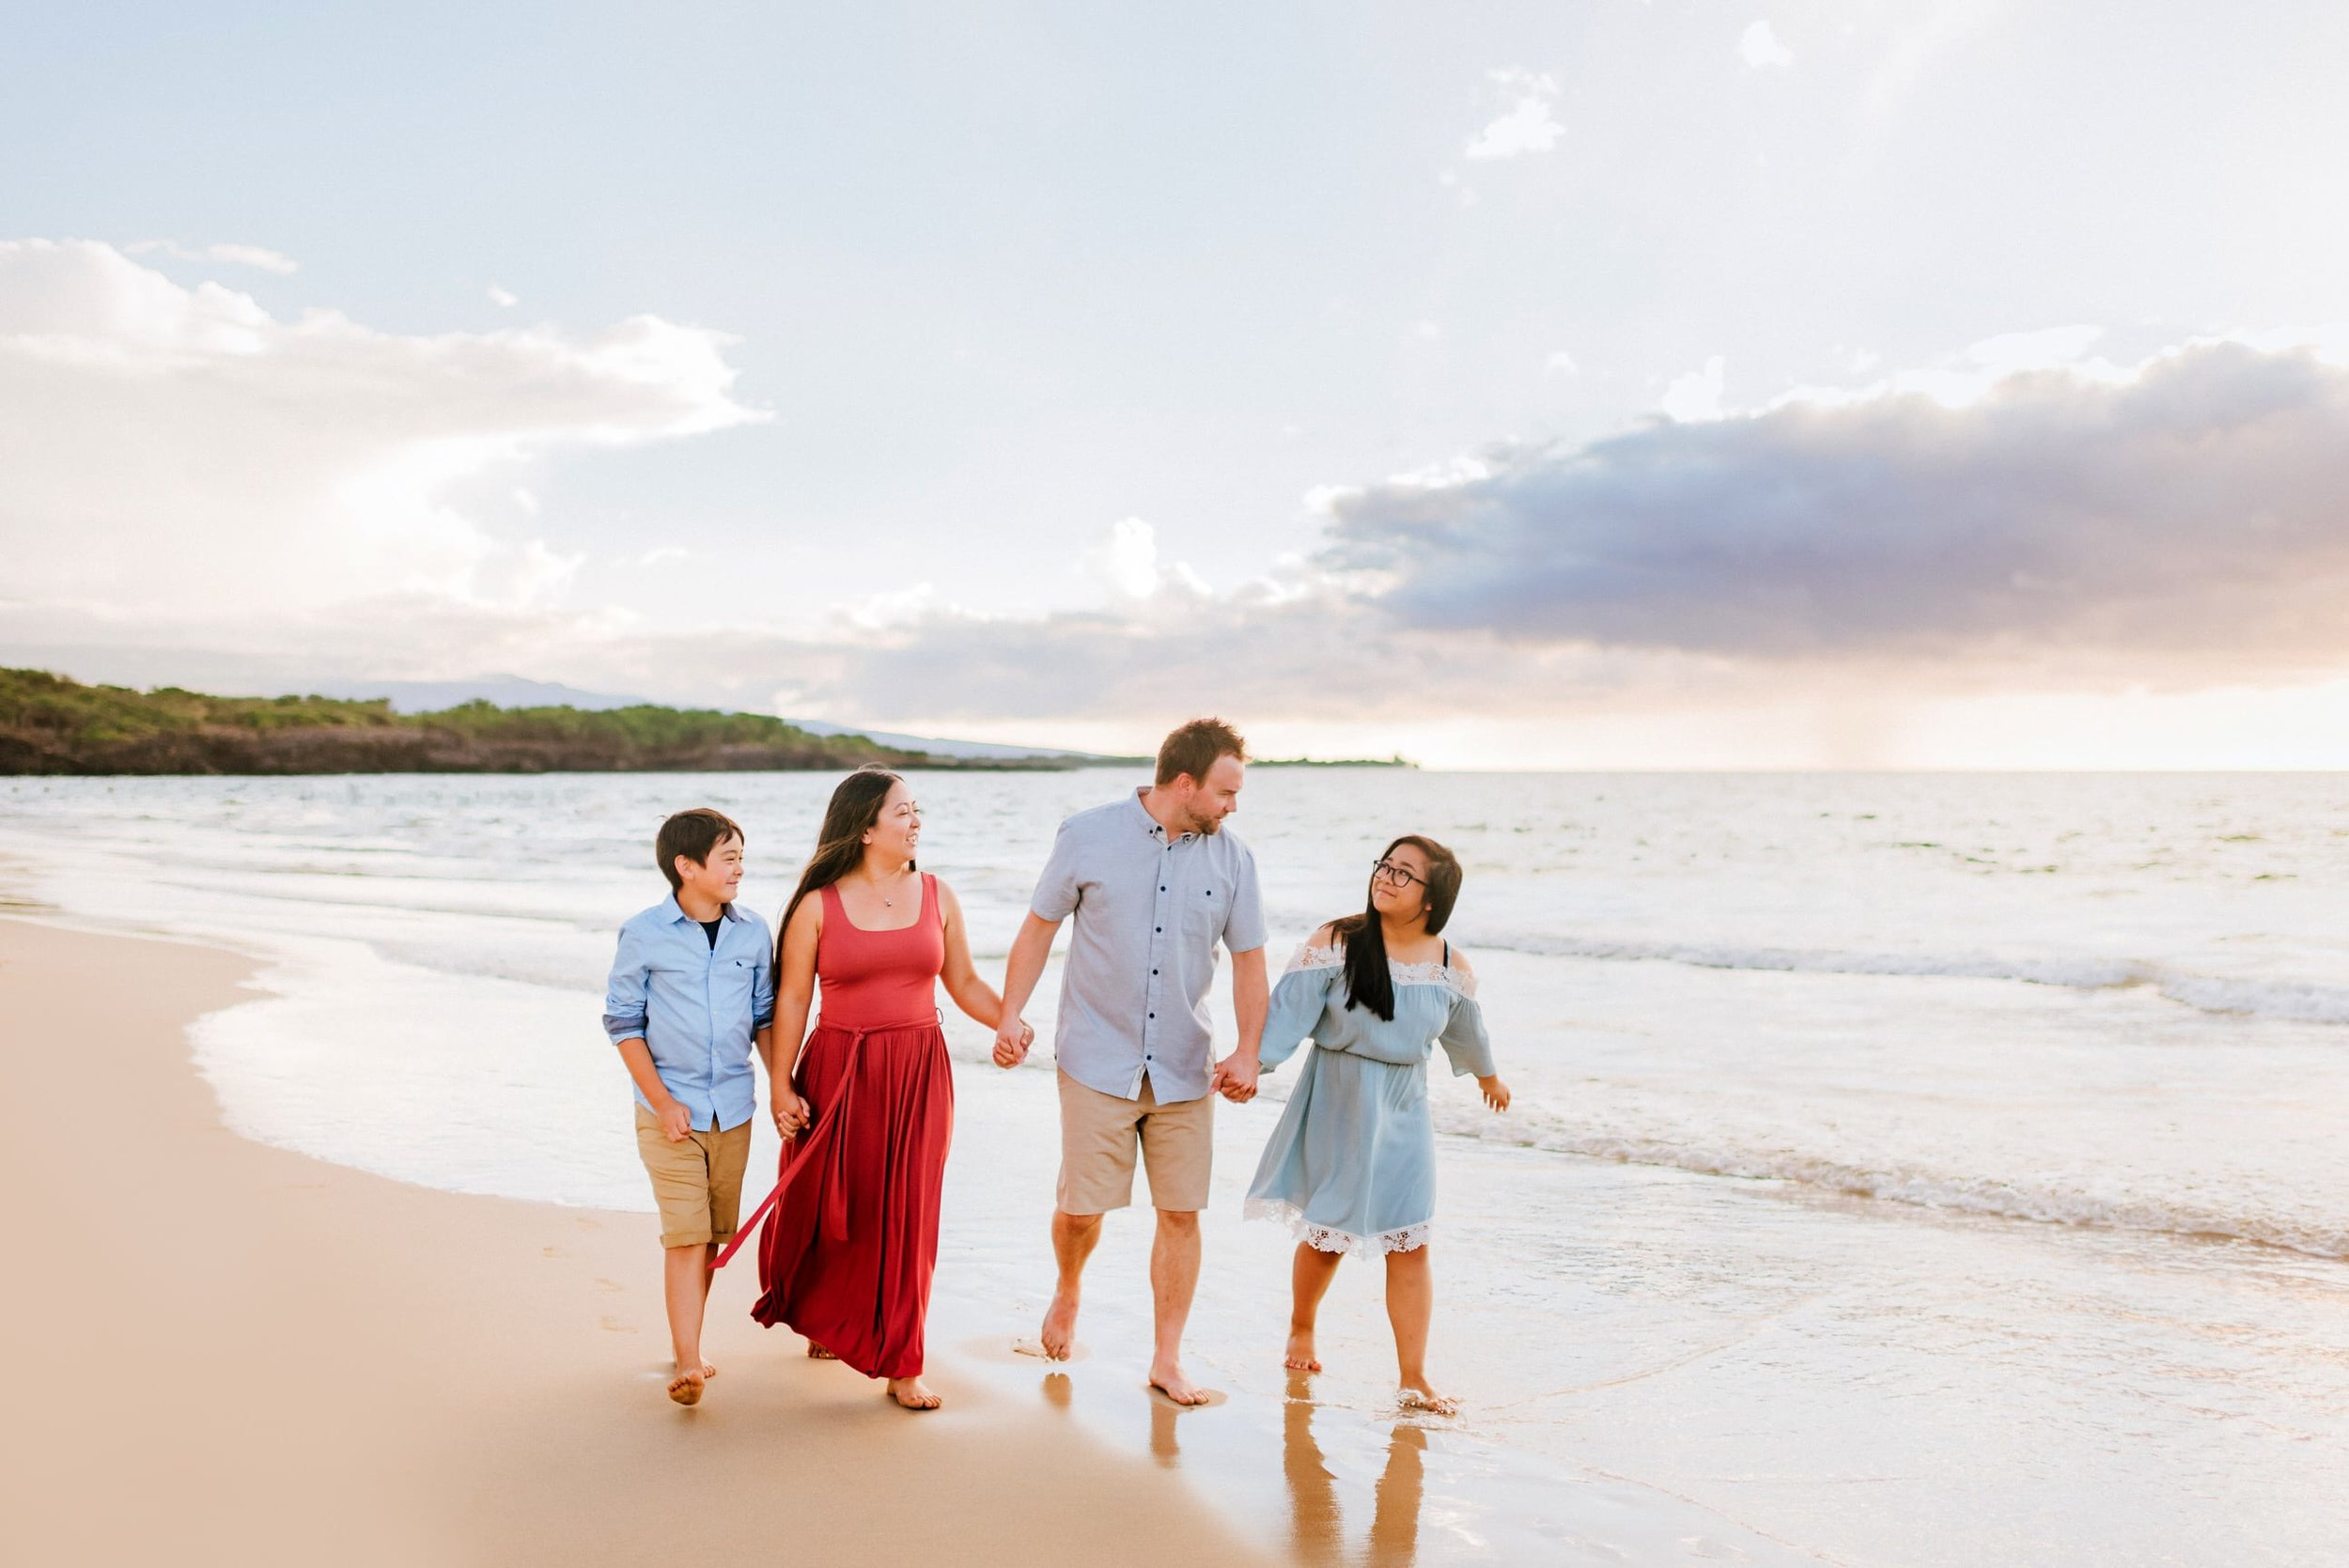 Family-Photographer-Big-Island-Hawaii-10.jpg